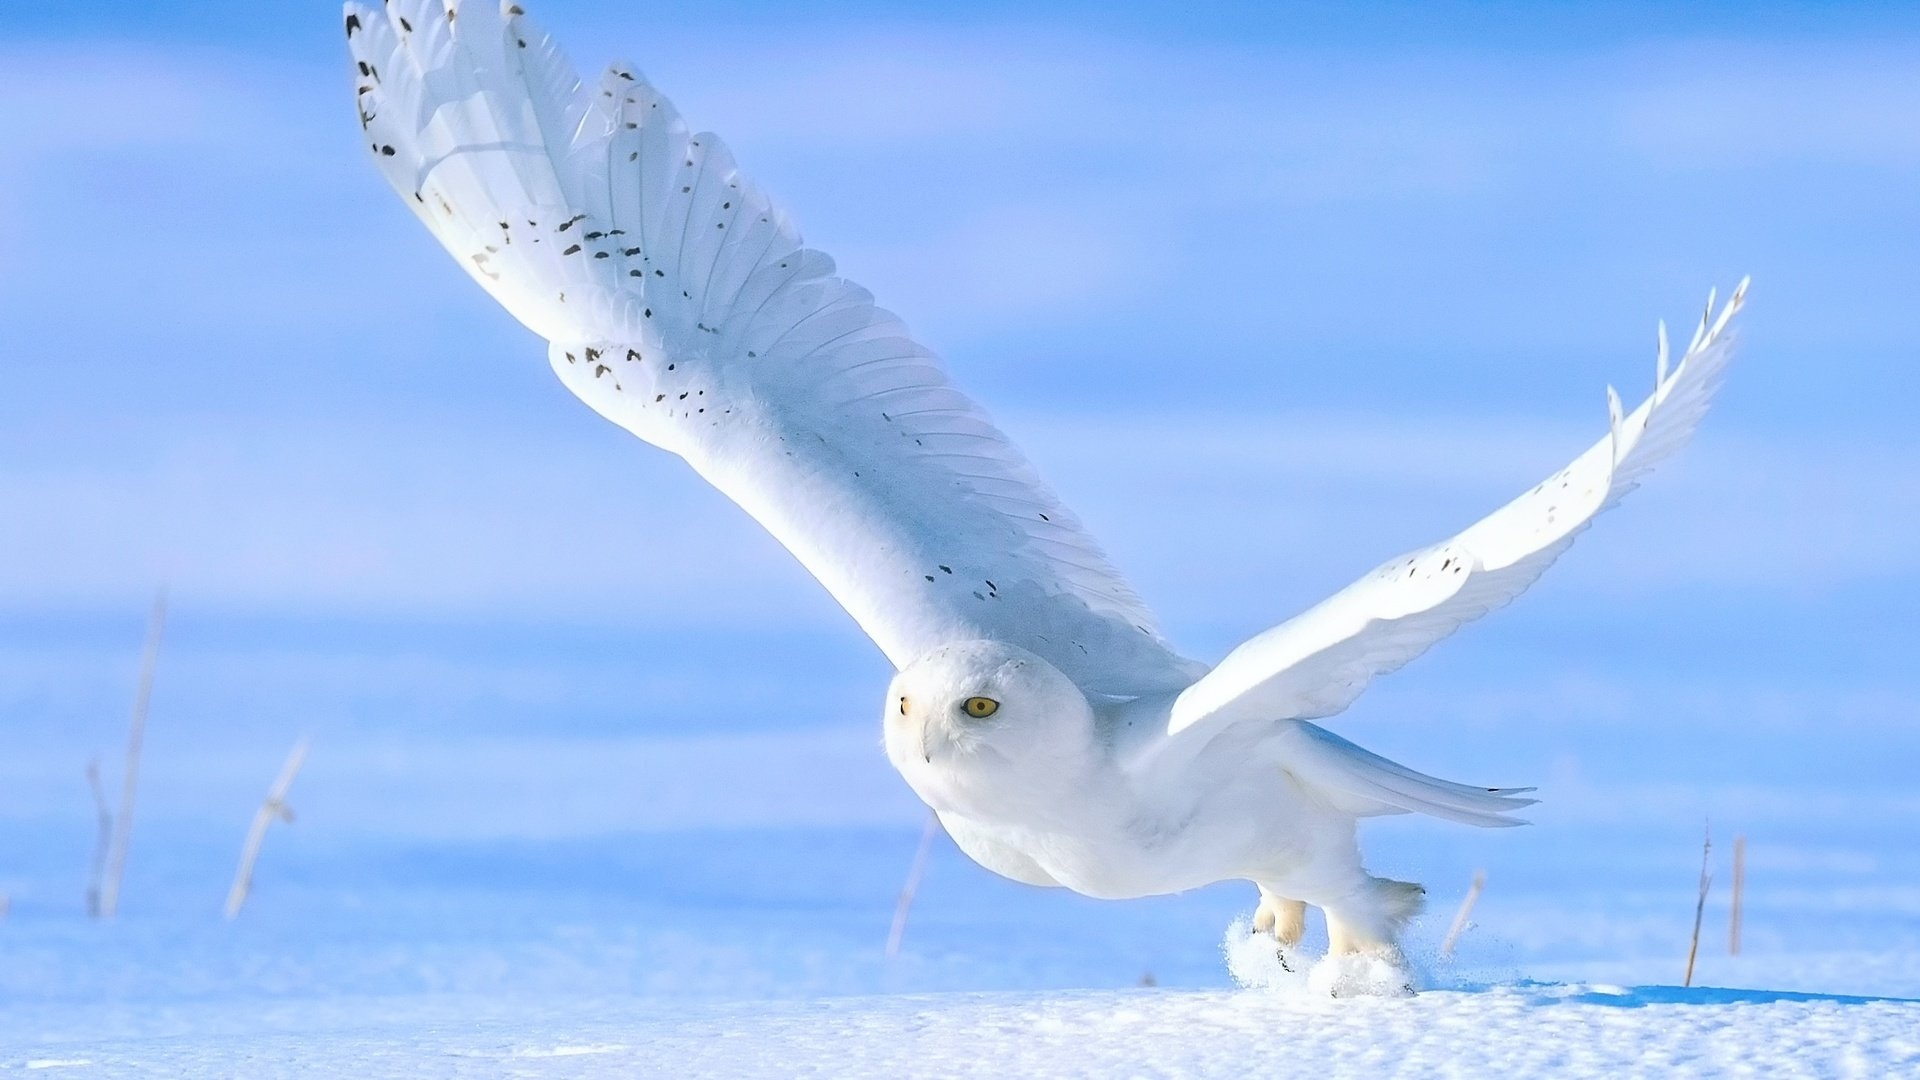 Polar Owl Wallpaper